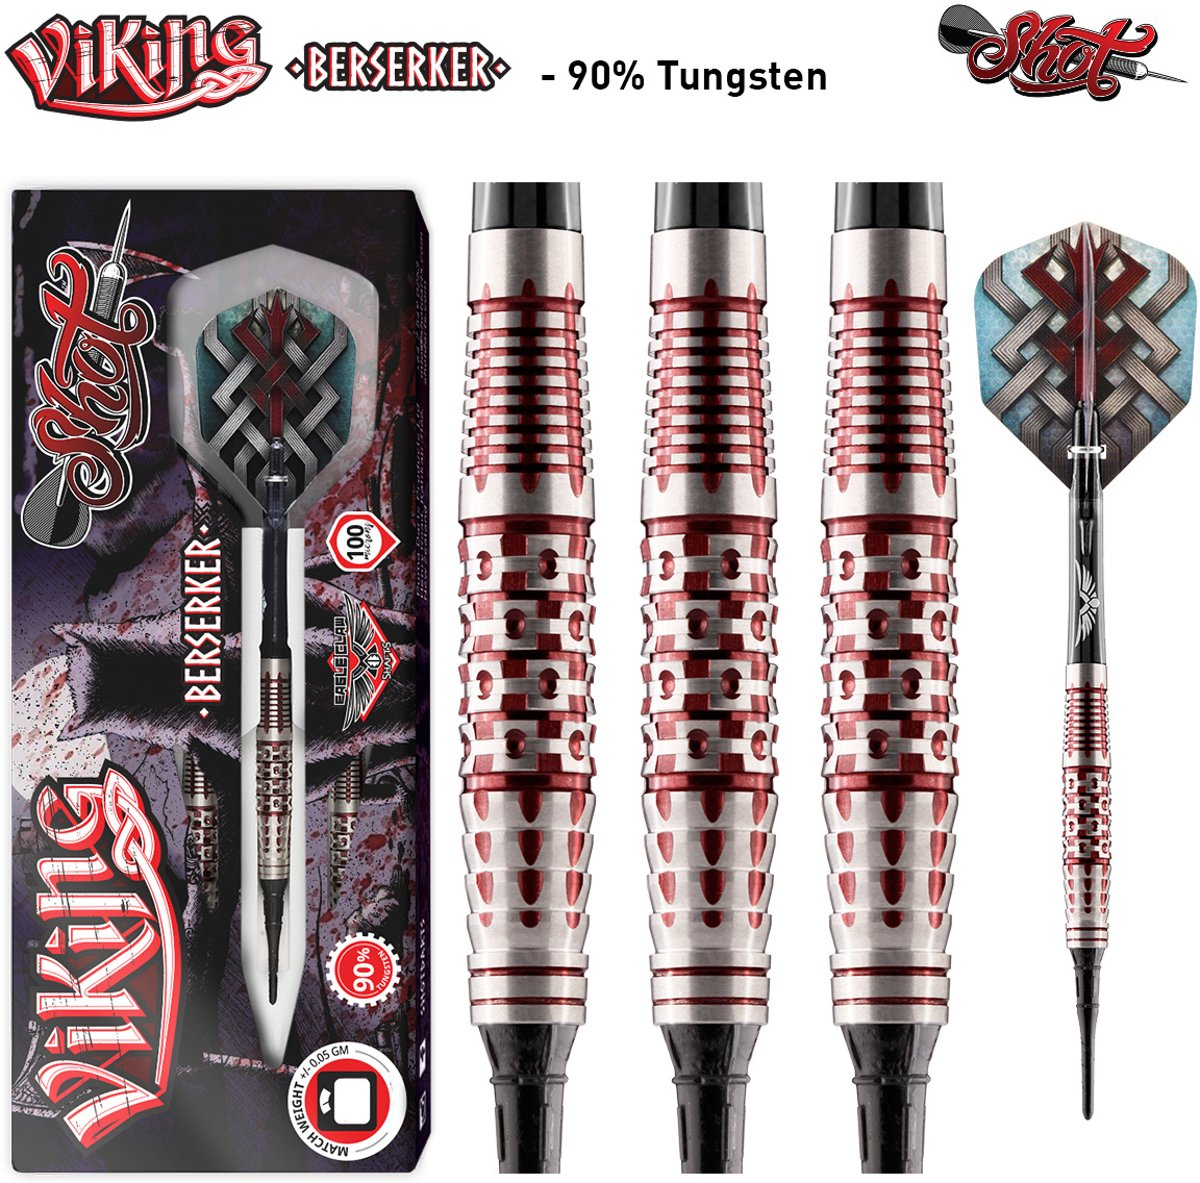 Shot Softtip Viking Berserker 90% 20 gram Darts kopen